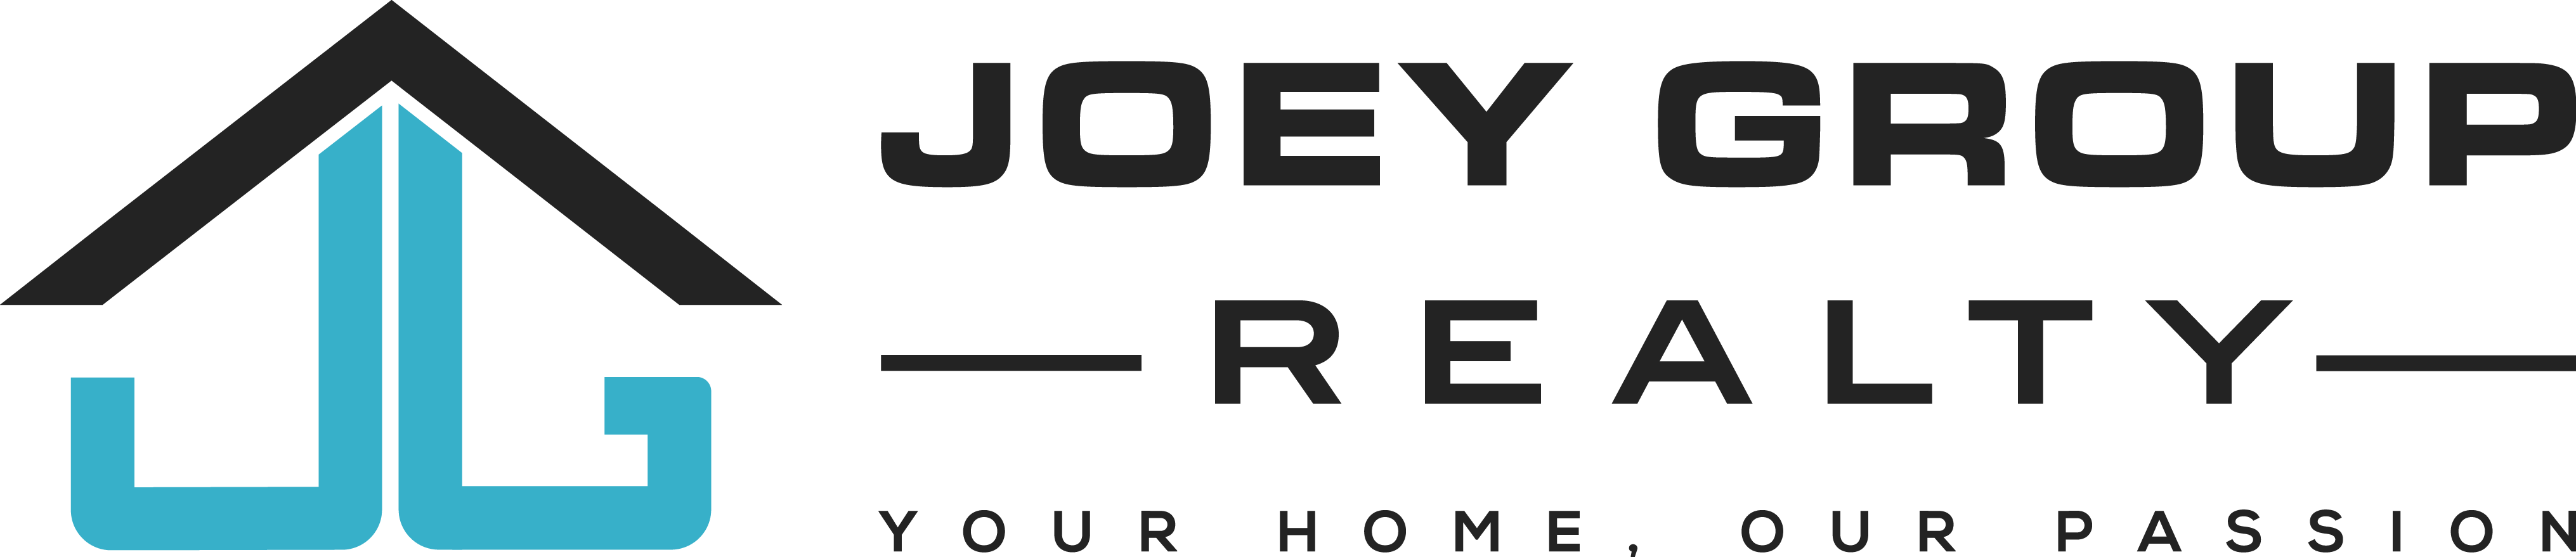 Joey Group Realty logo